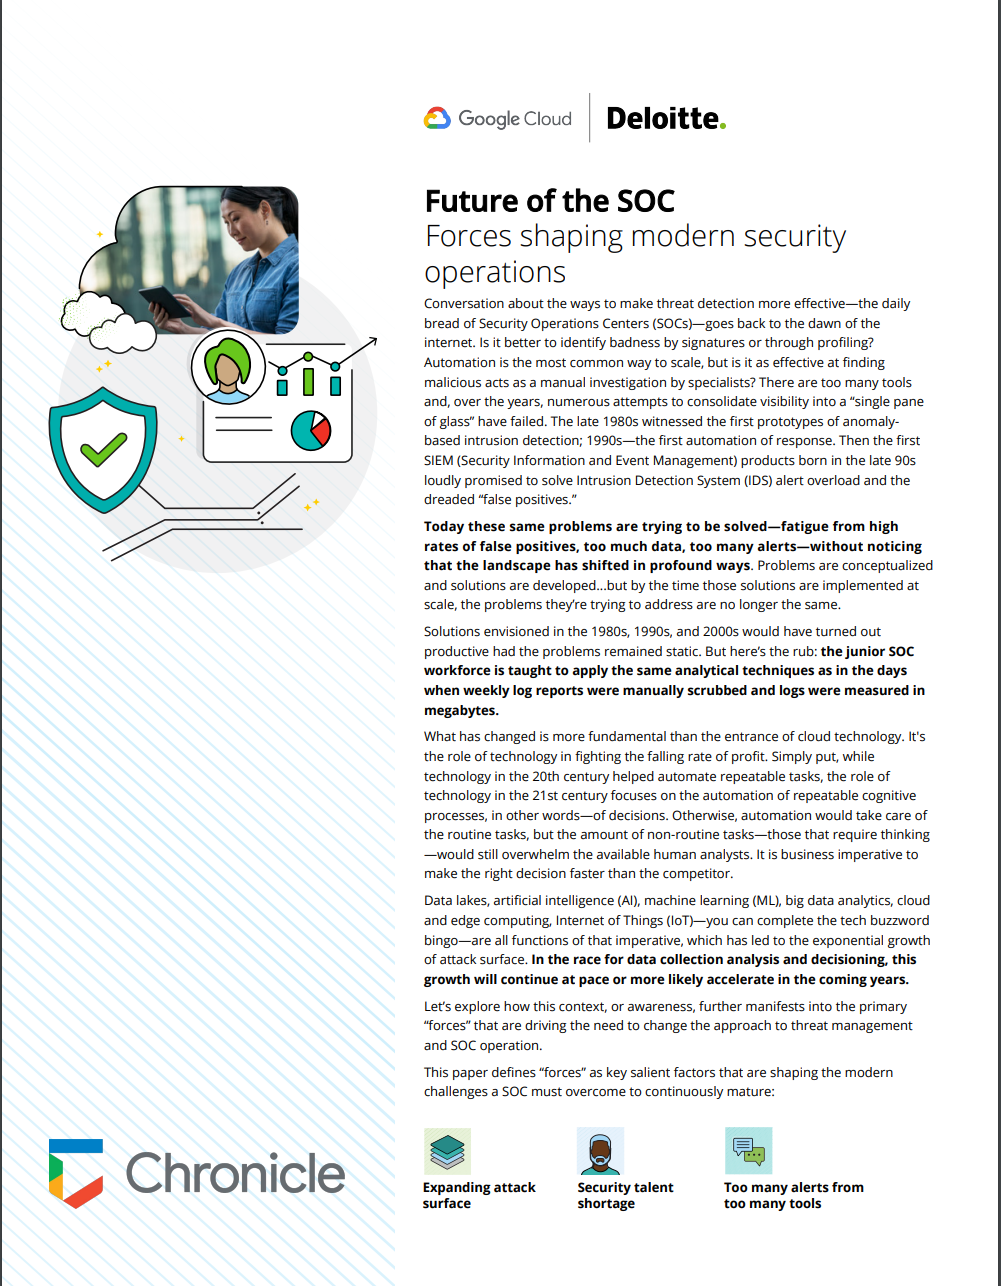 Future of the SOC- Forces shaping modern security operations